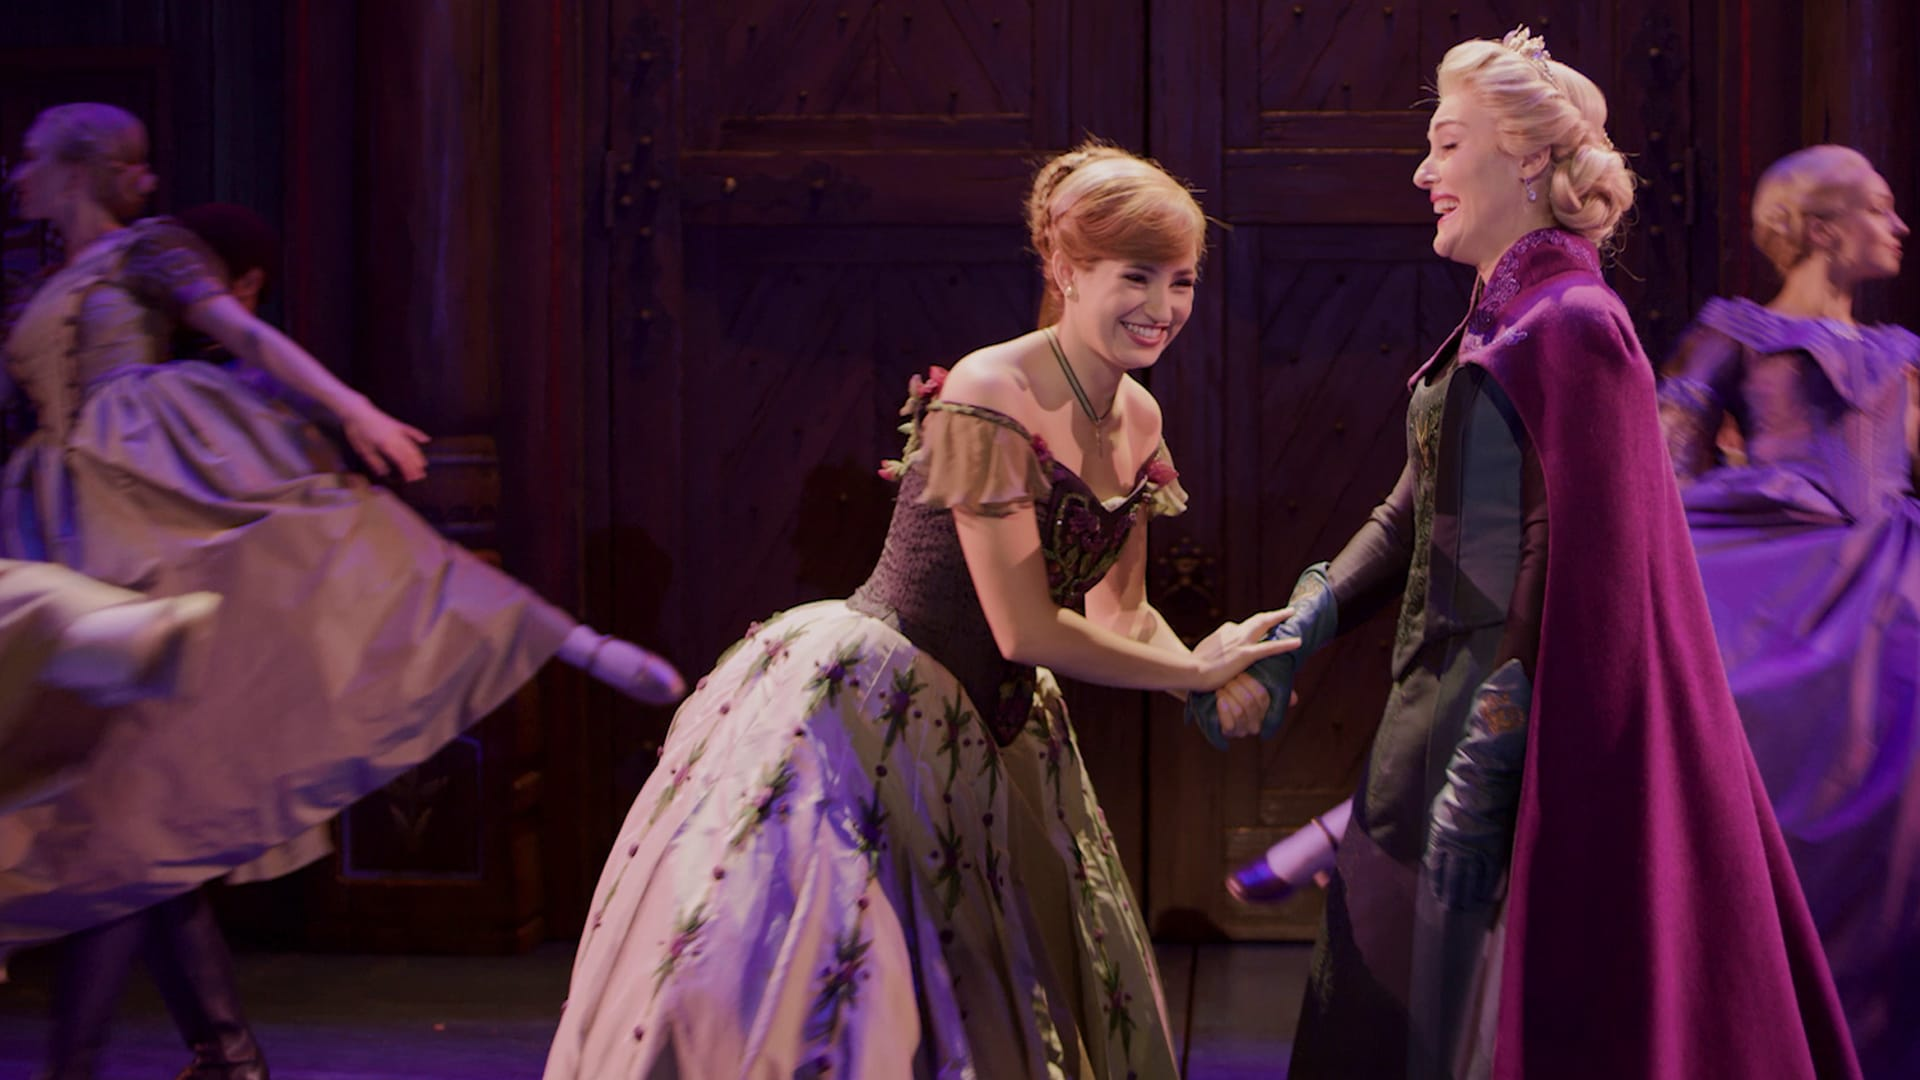 Frozen the Musical is now playing in Australia